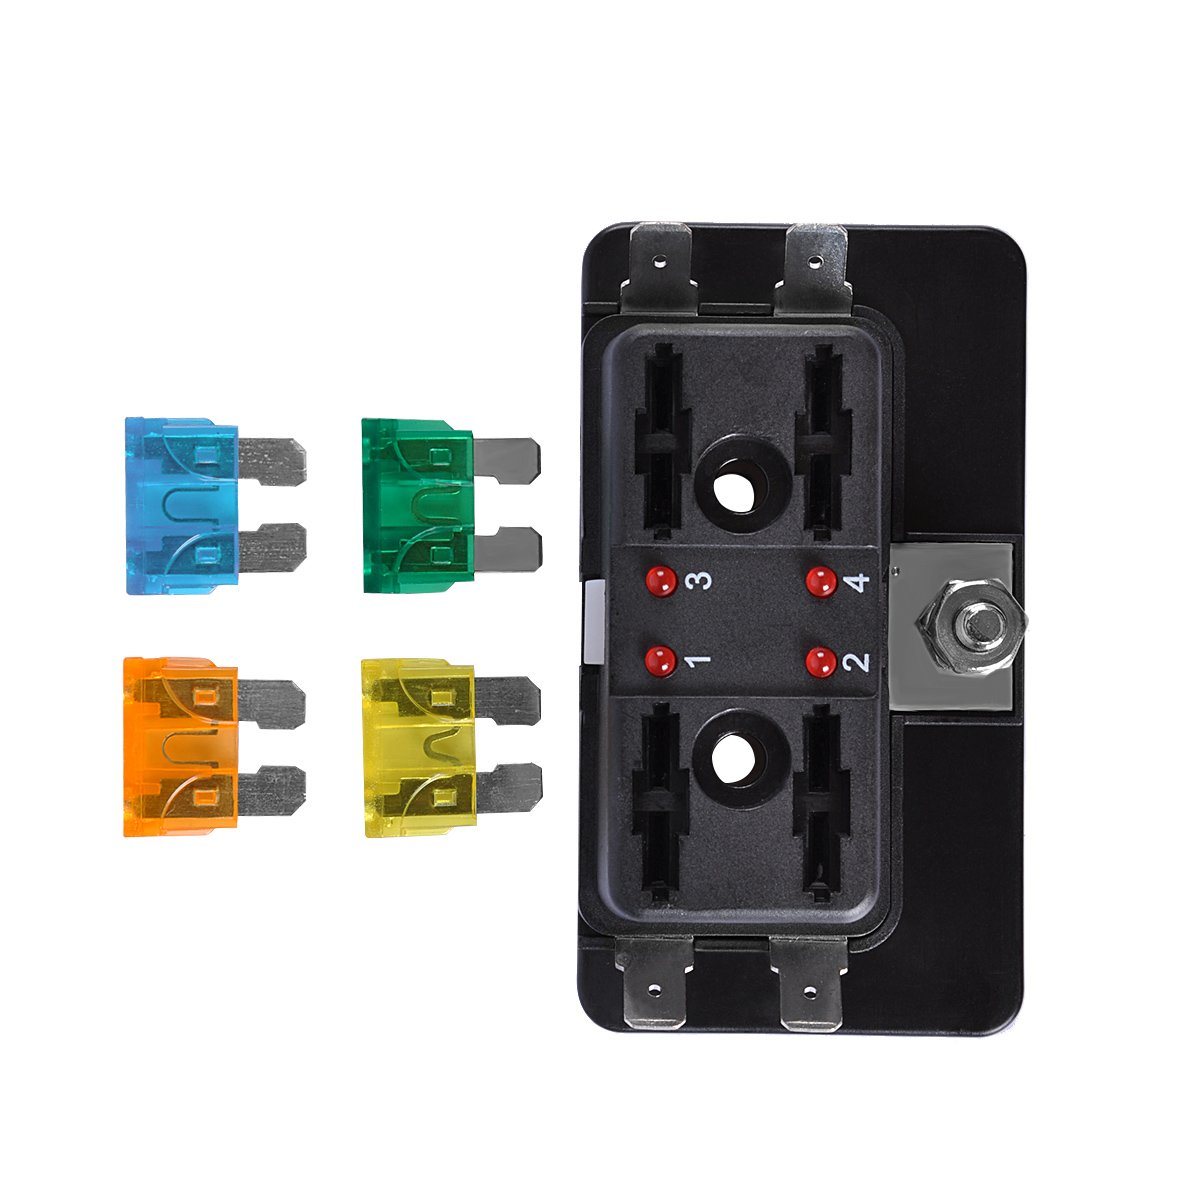 4-Way Blade Fuse Block, AutoEC Marine Fuse Box Holder for Car Boat Marine Trike with Led Safety Indicator for Blown Fuse by AutoEC (Image #4)